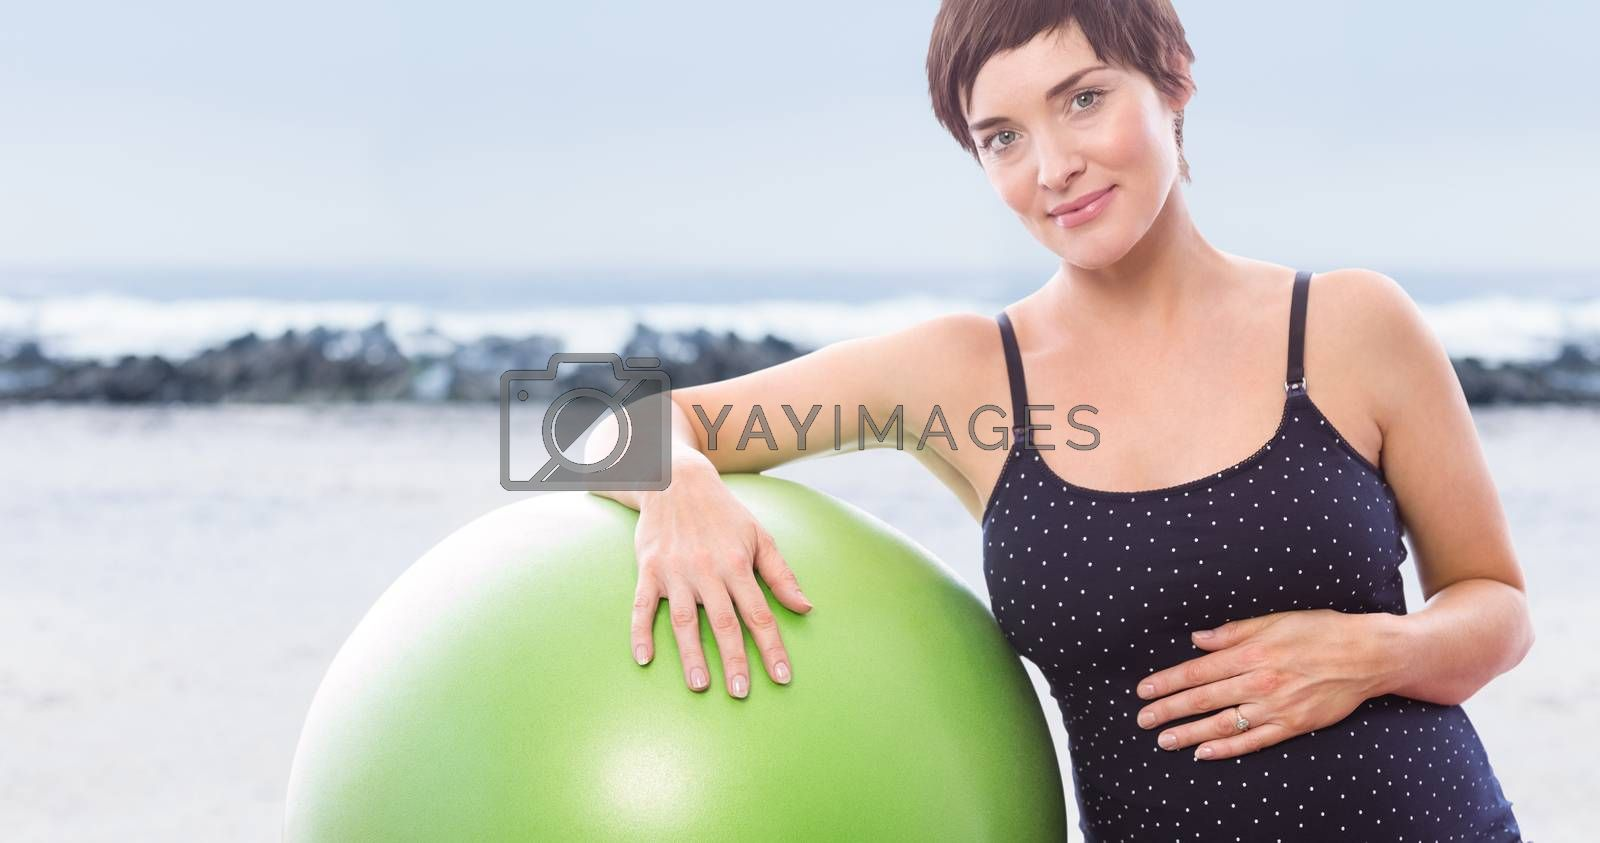 Happy pregnant woman with exercise ball over white background against view of waves